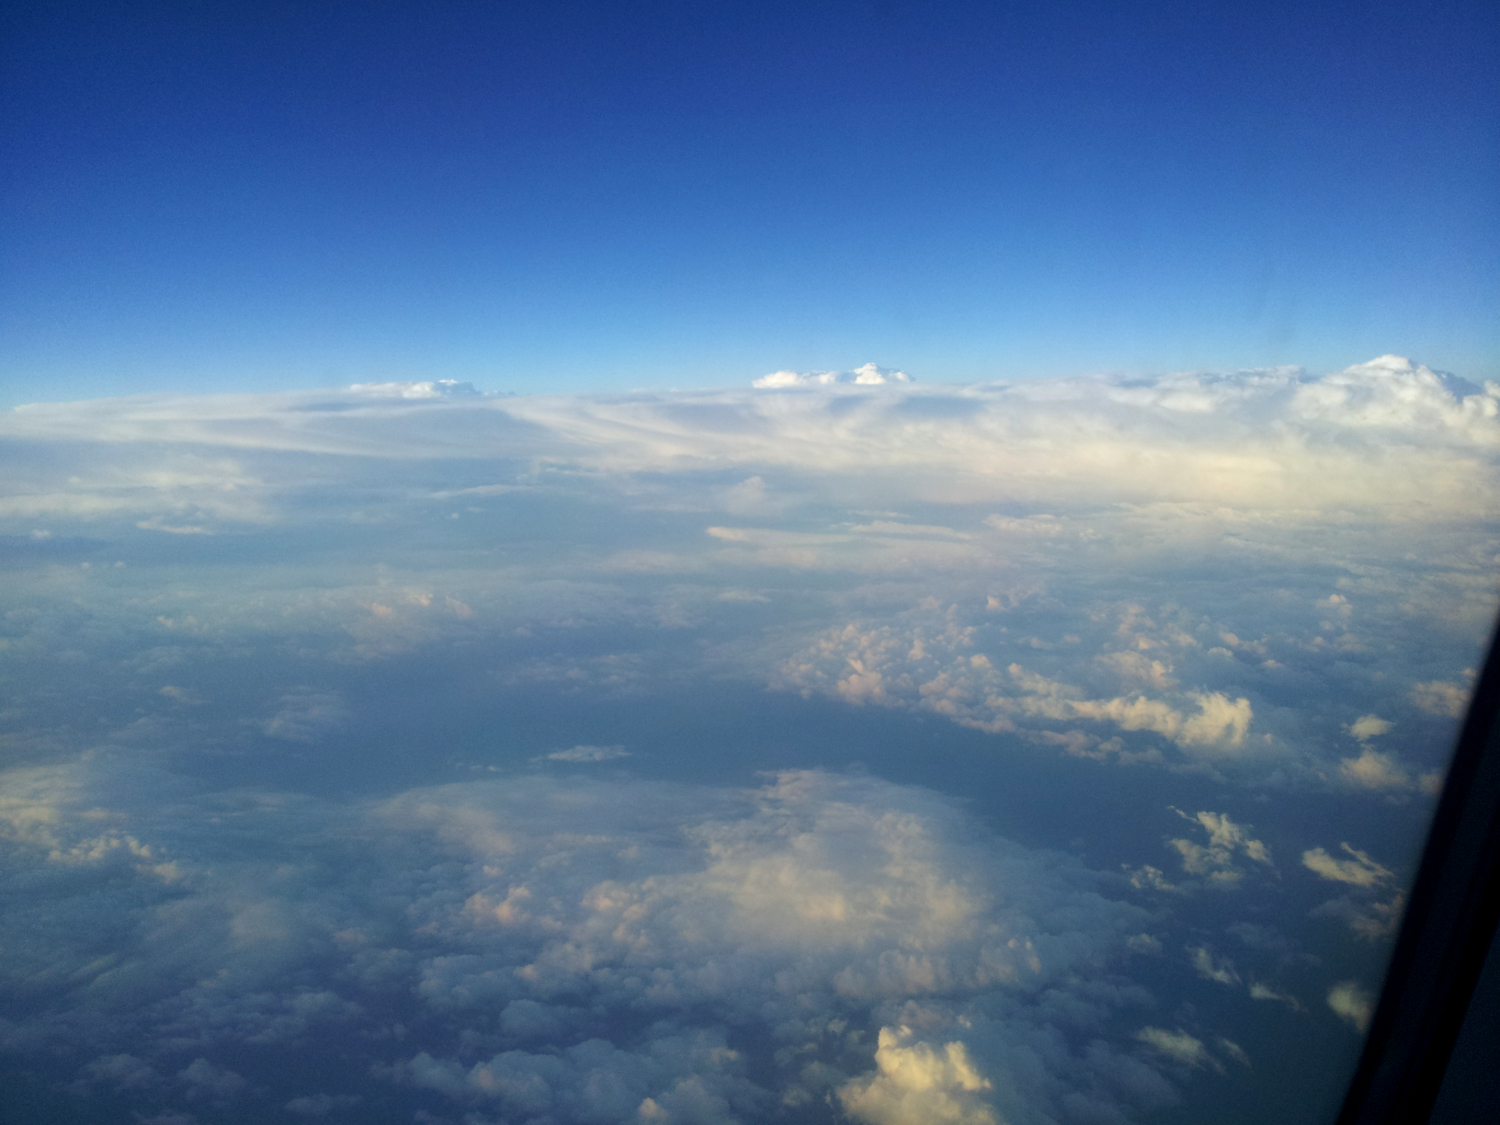 Spectacular view from the airplane